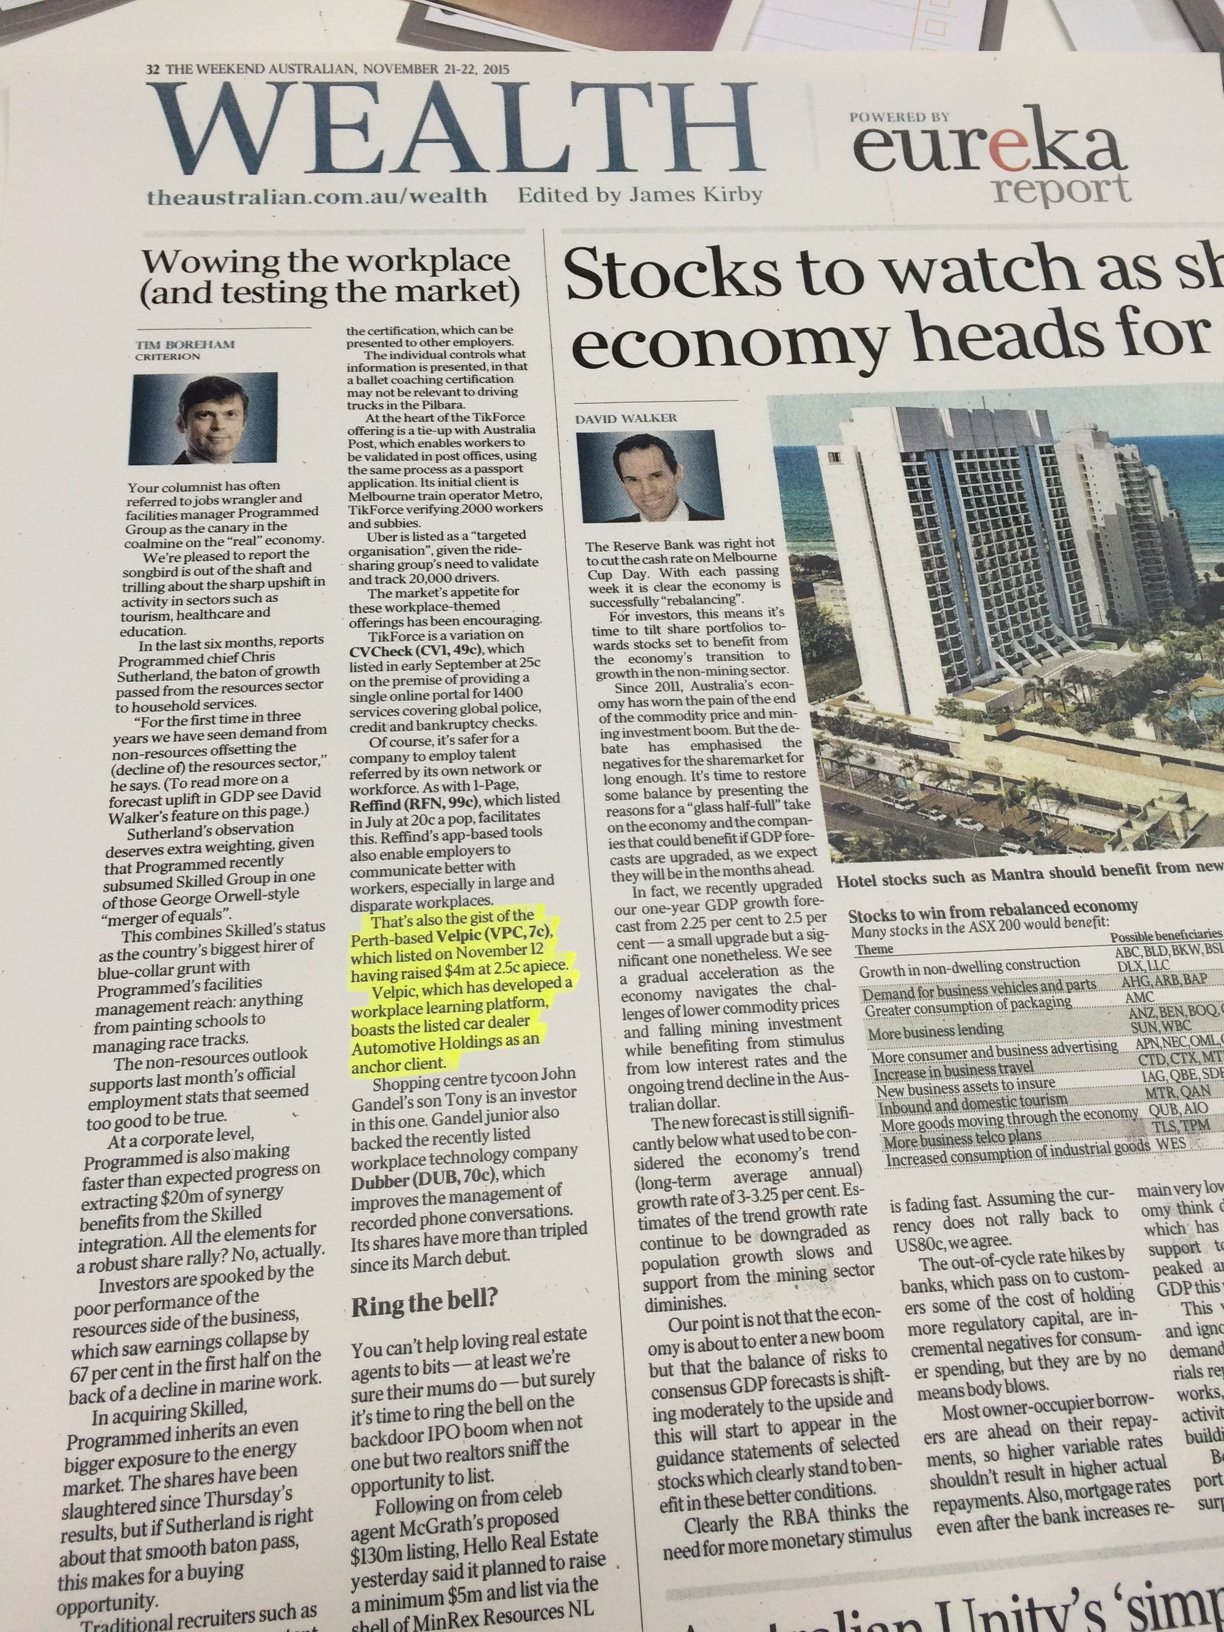 """Seen in The Weekend @australian """"Perth-based @velpic (VPC, 7c) listed on Nov 12 having raised $4m at 2.5c a piece.."""" https://t.co/uYi23bKUfl"""